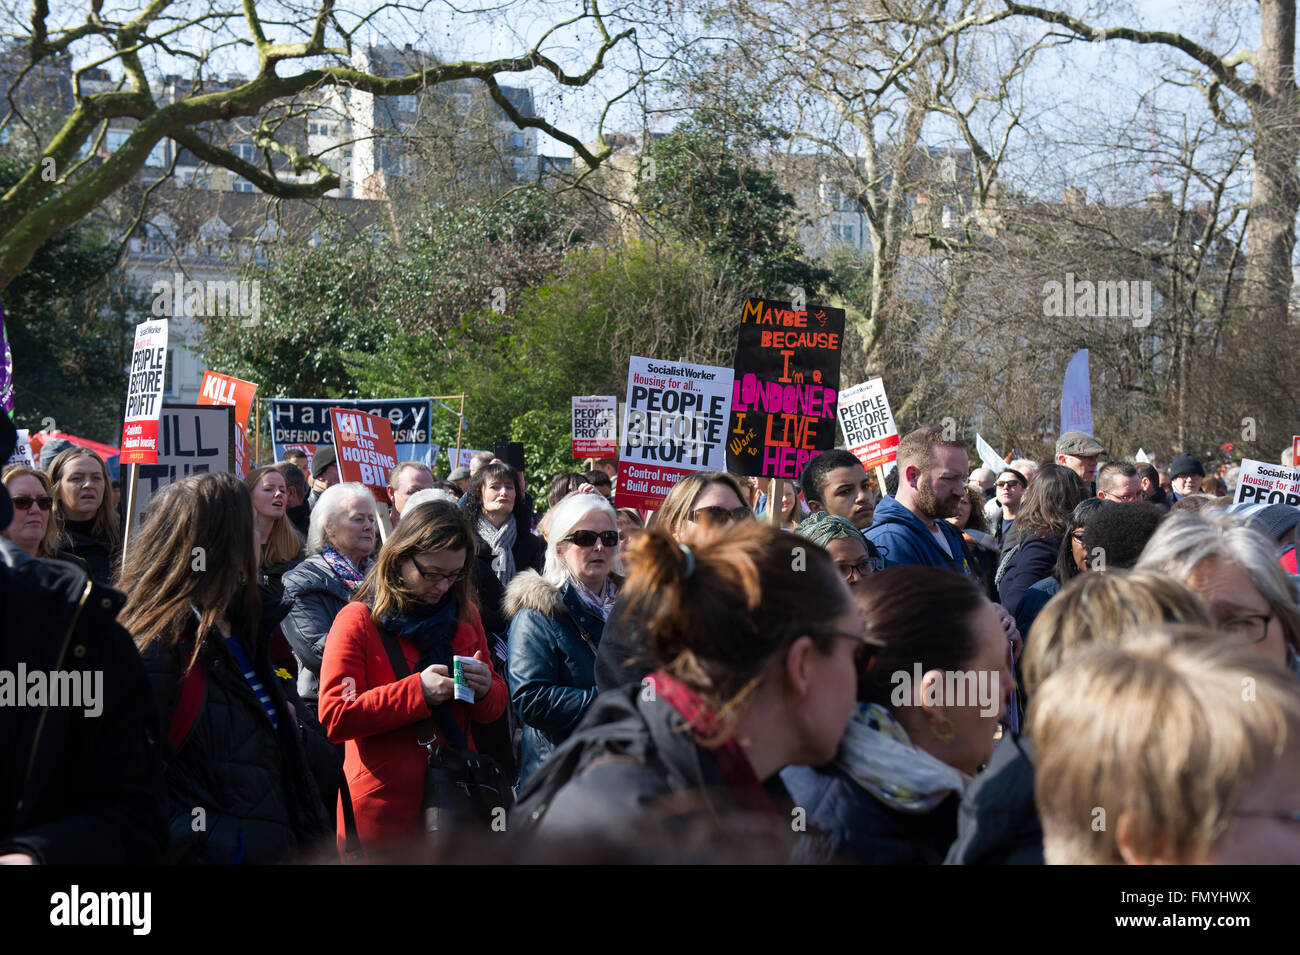 London, UK. 13th March, 2016. Protesters gather in London at Lincoln's Inn Field on 13th March 2016  to protest - Stock Image